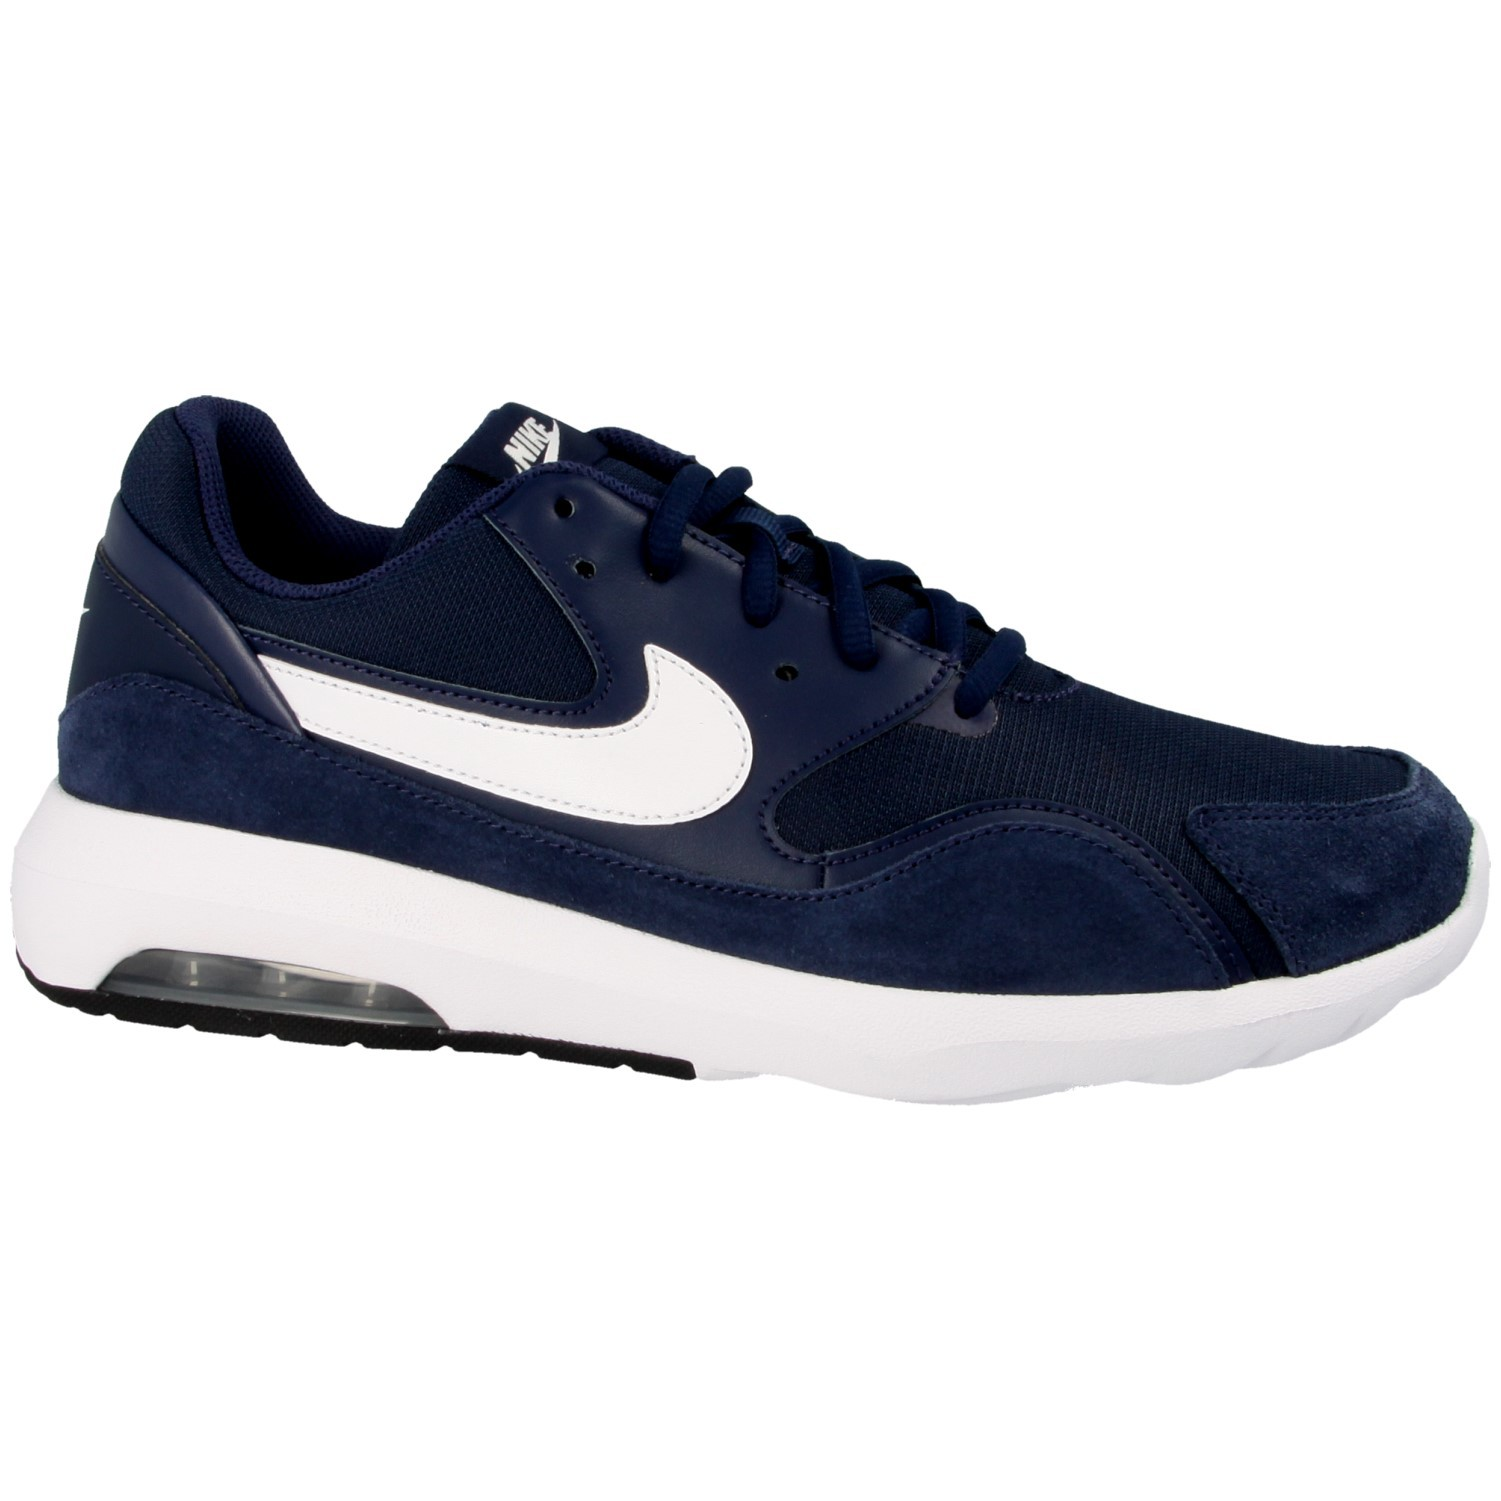 Nike Air Max Nostalgic Navy Runner Sneakers